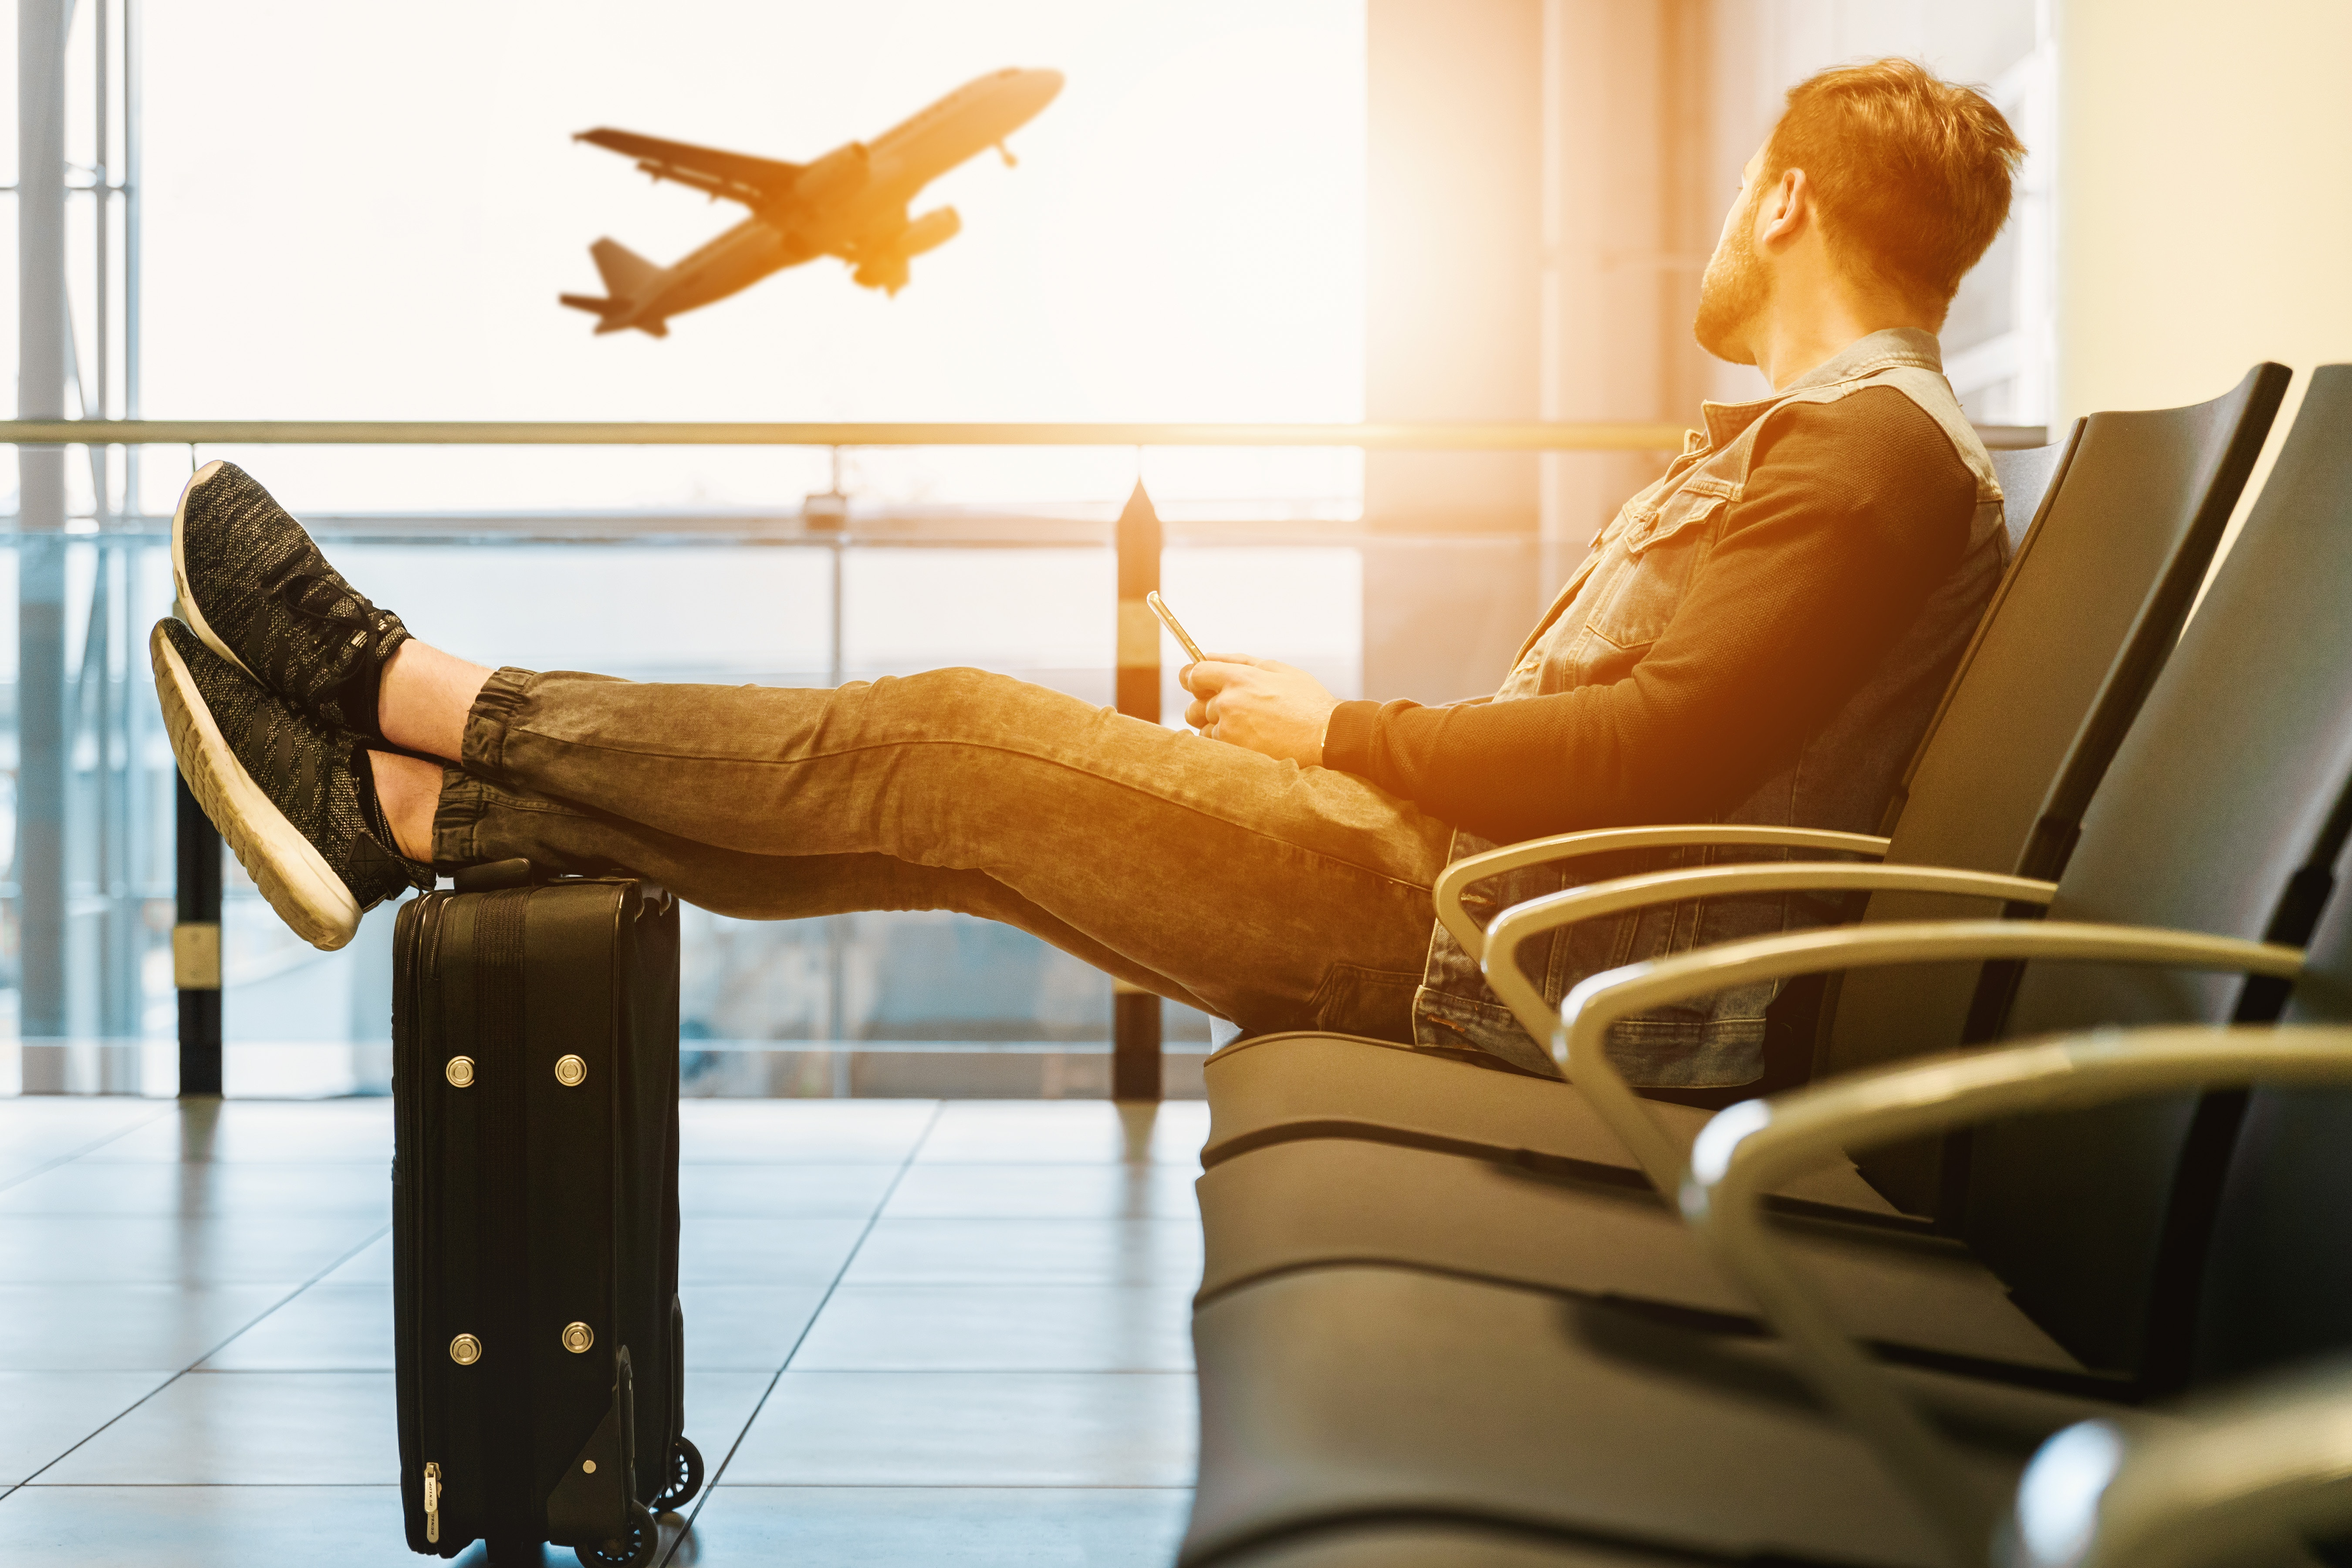 man delayed in waiting area while flight leaving